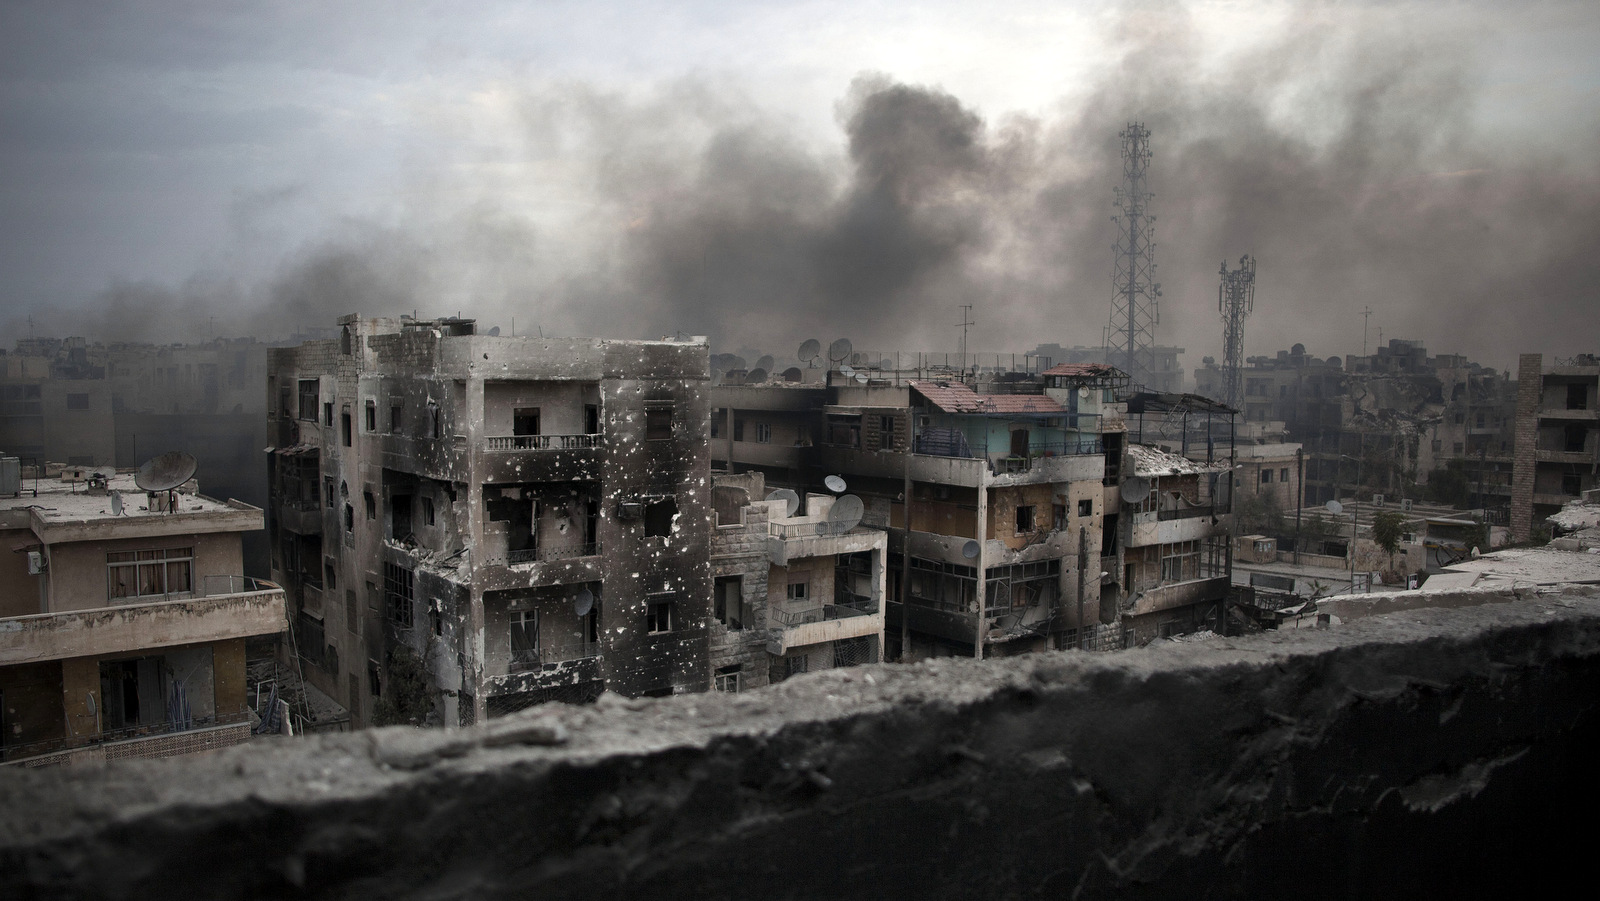 Smoke rises over Saif Al Dawla district in Aleppo, Syria, Tuesday, Oct. 2, 2012 .(AP Photo/ Manu Brabo)